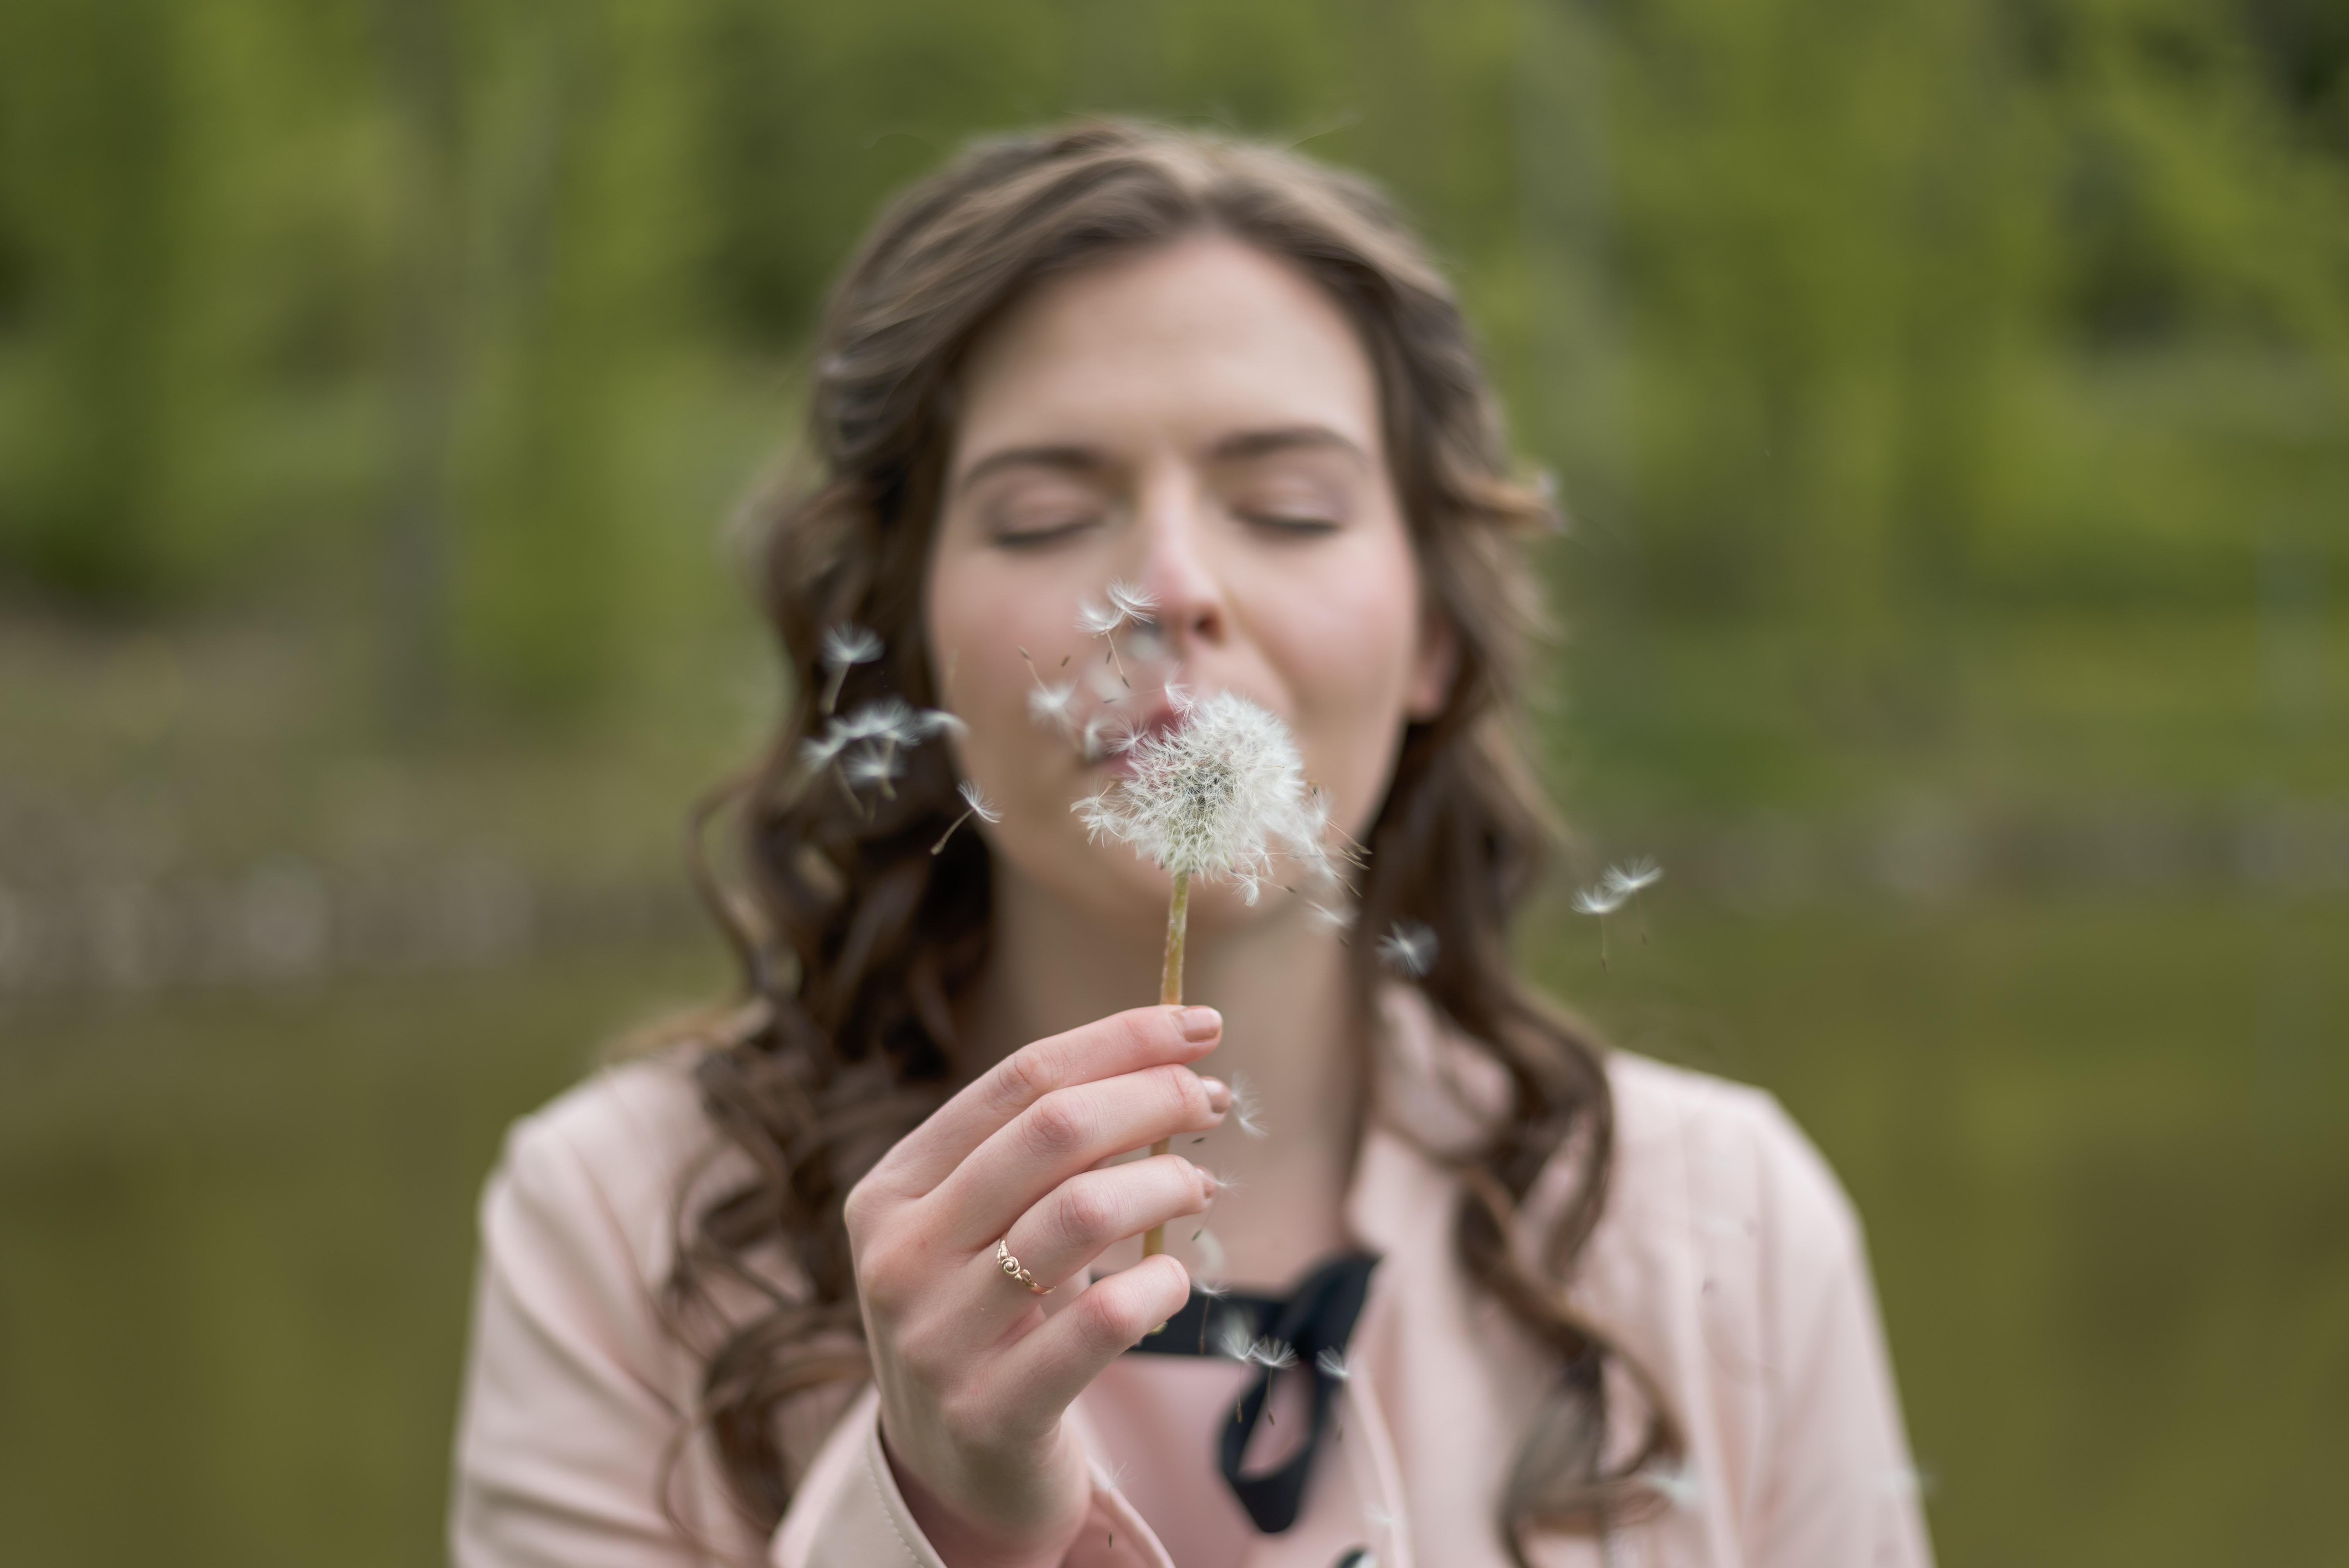 A woman with eyes closed blows seeds from a dandelion against a green background